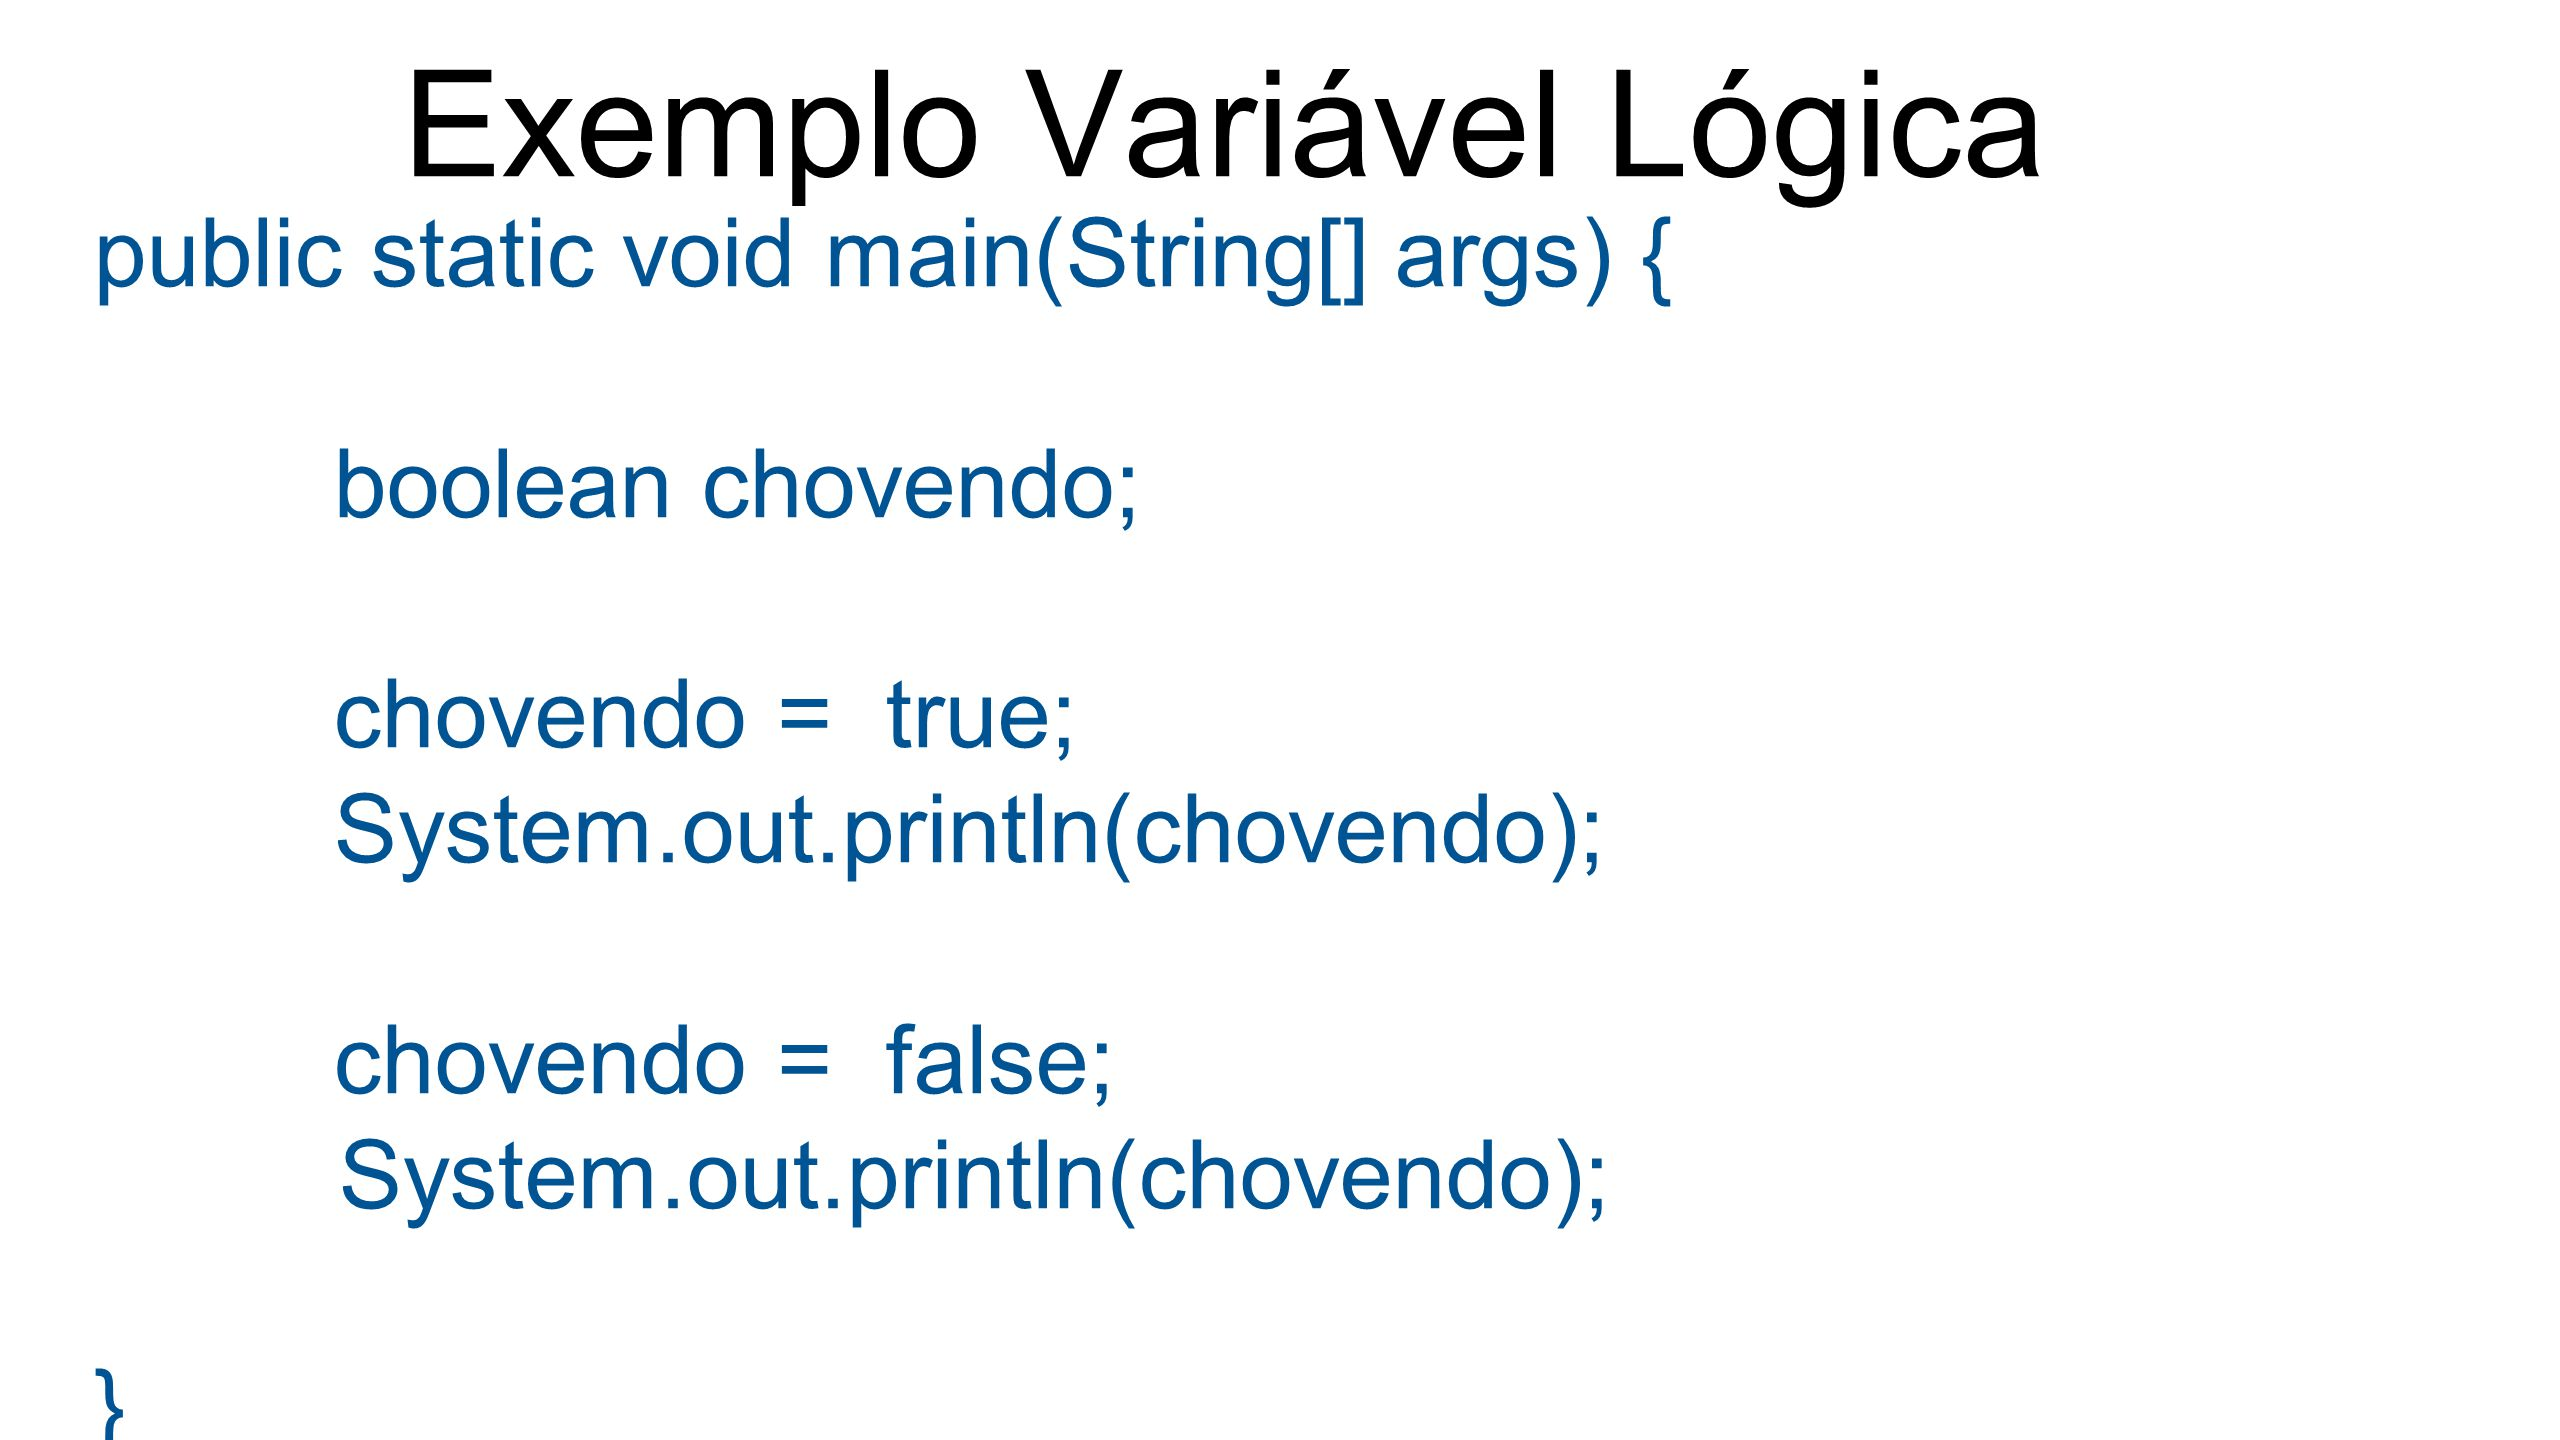 Exemplo Variável Lógica public static void main(String[] args) { boolean chovendo; chovendo = true; System.out.println(chovendo); chovendo = false; Sy